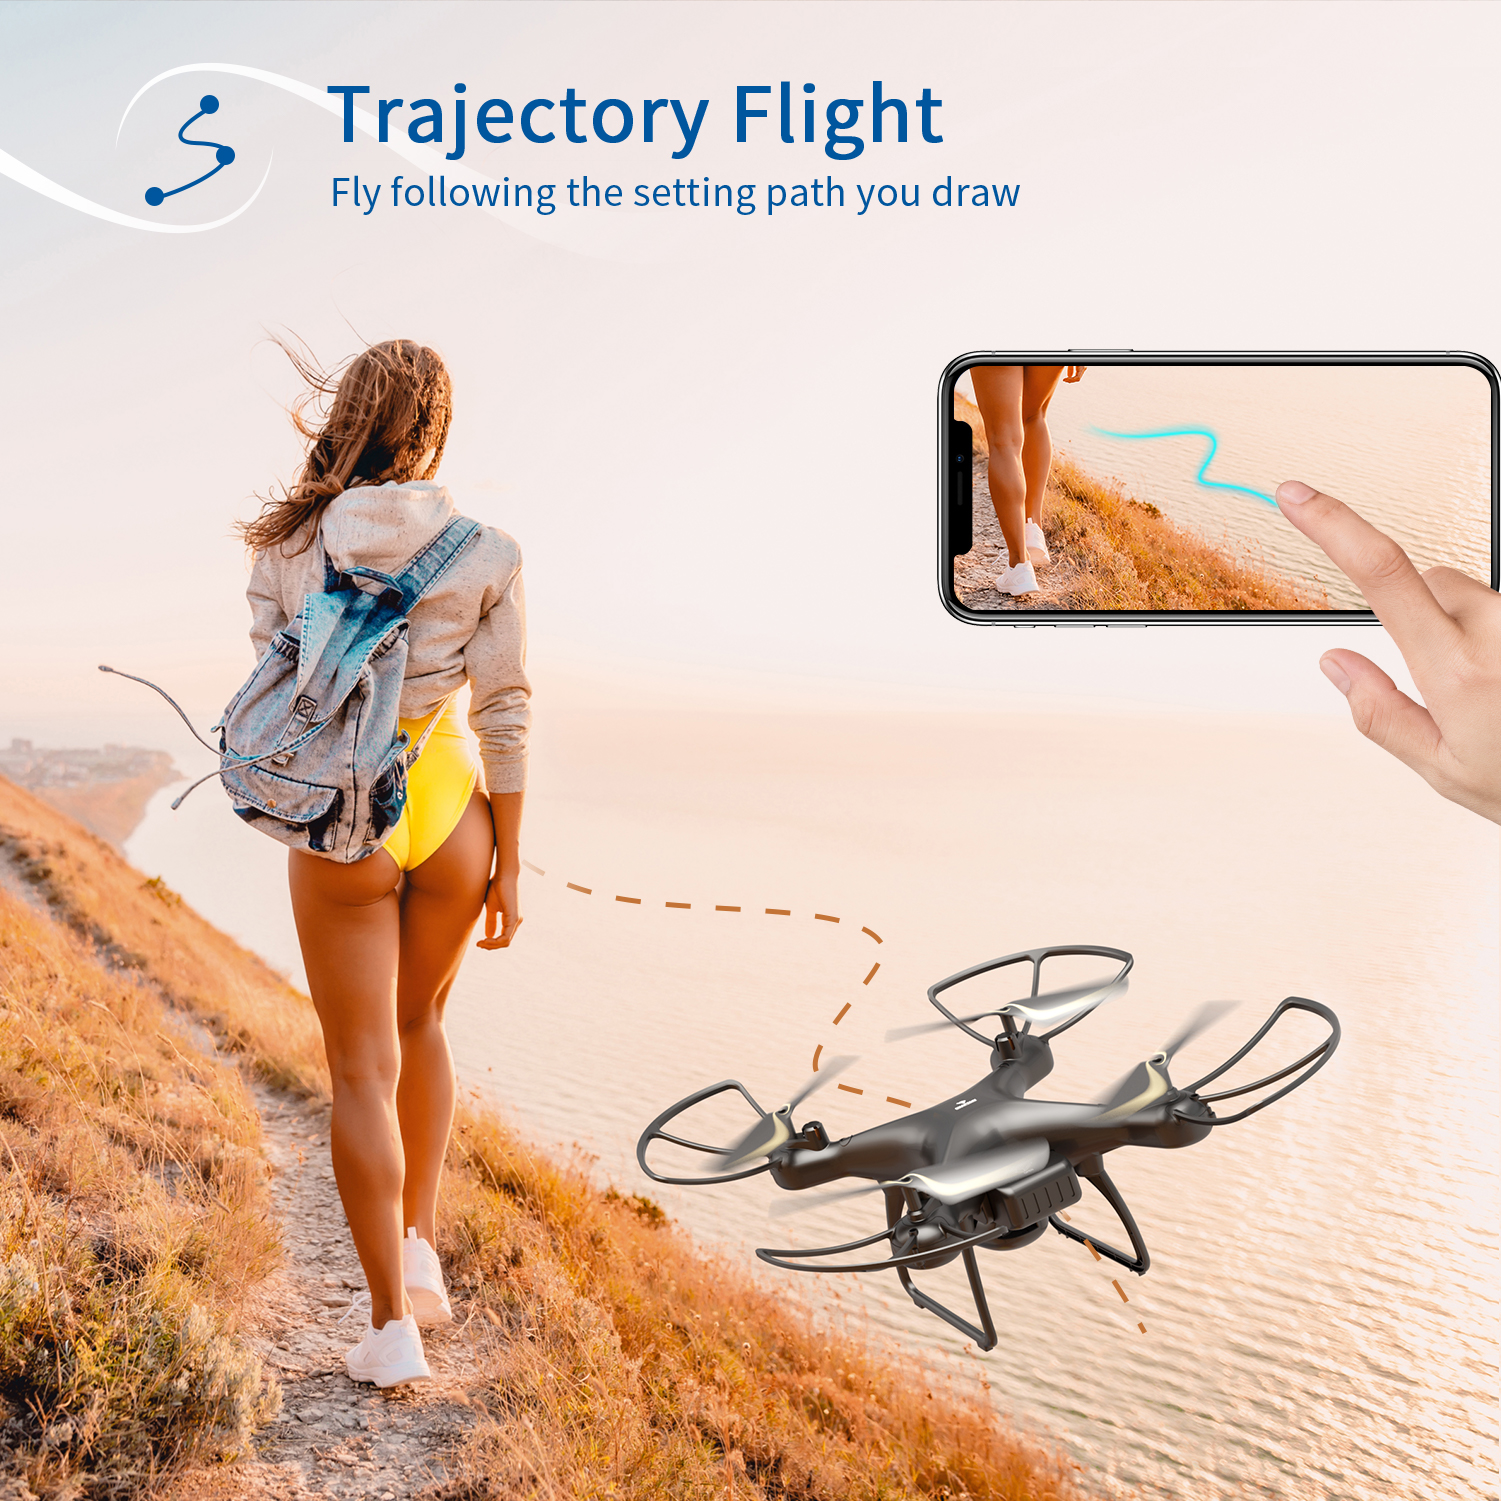 SNAPTAIN SP650 Drone 2-Axis Gimbal Camera 2K HD Video Camera Drone Voice Gesture Control Wide Angle Foldable Quadcopter RC dron 4